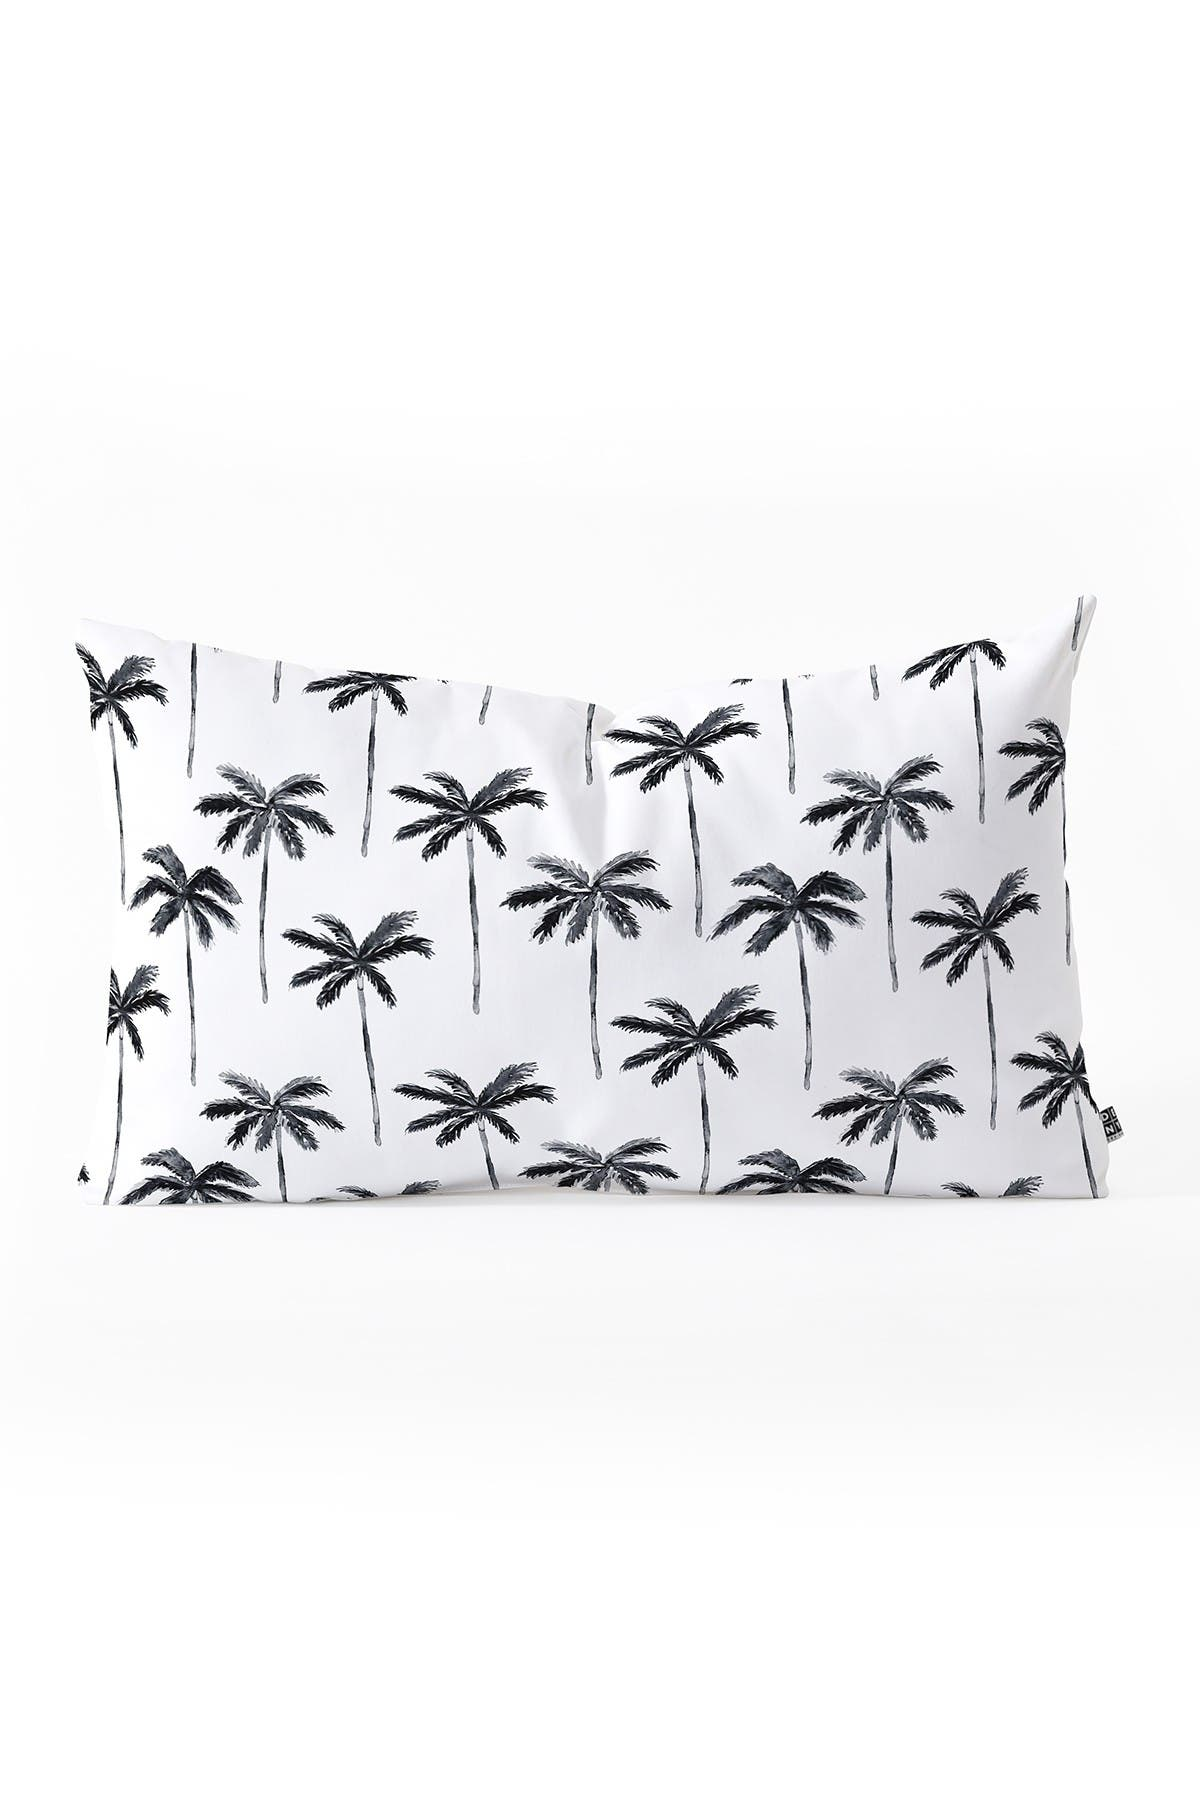 Image of Deny Designs Little Arrow Design Co Watercolor Palm tree in Black Oblong Throw Pillow